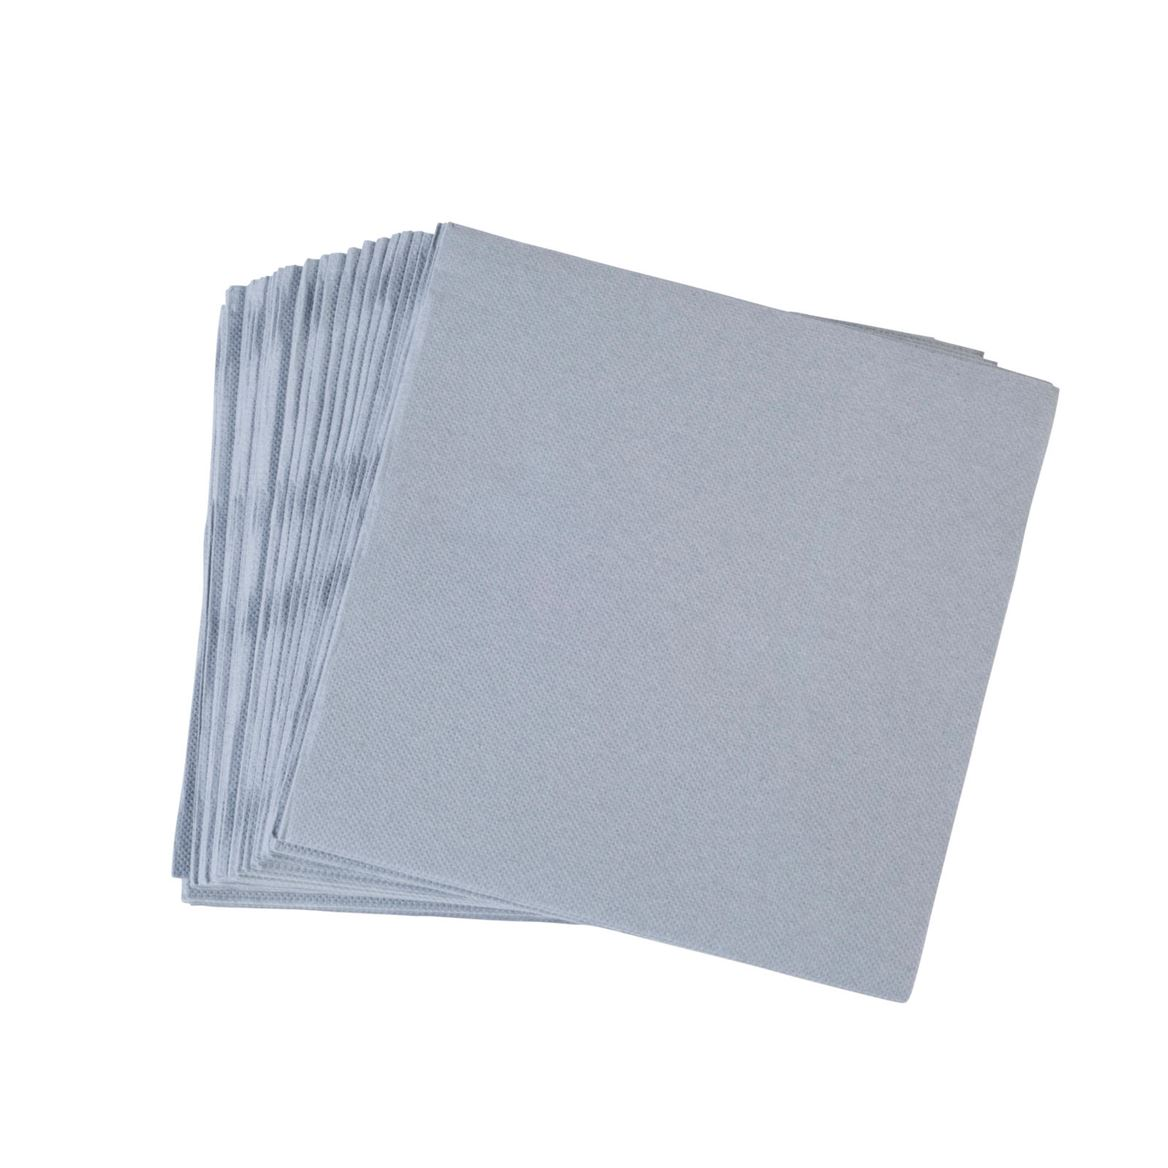 SOFT Set de 40 serviettes 2 couleurs noir, gris Larg. 38 x Long. 38 cm_soft-set-de-40-serviettes-2-couleurs-noir,-gris-larg--38-x-long--38-cm